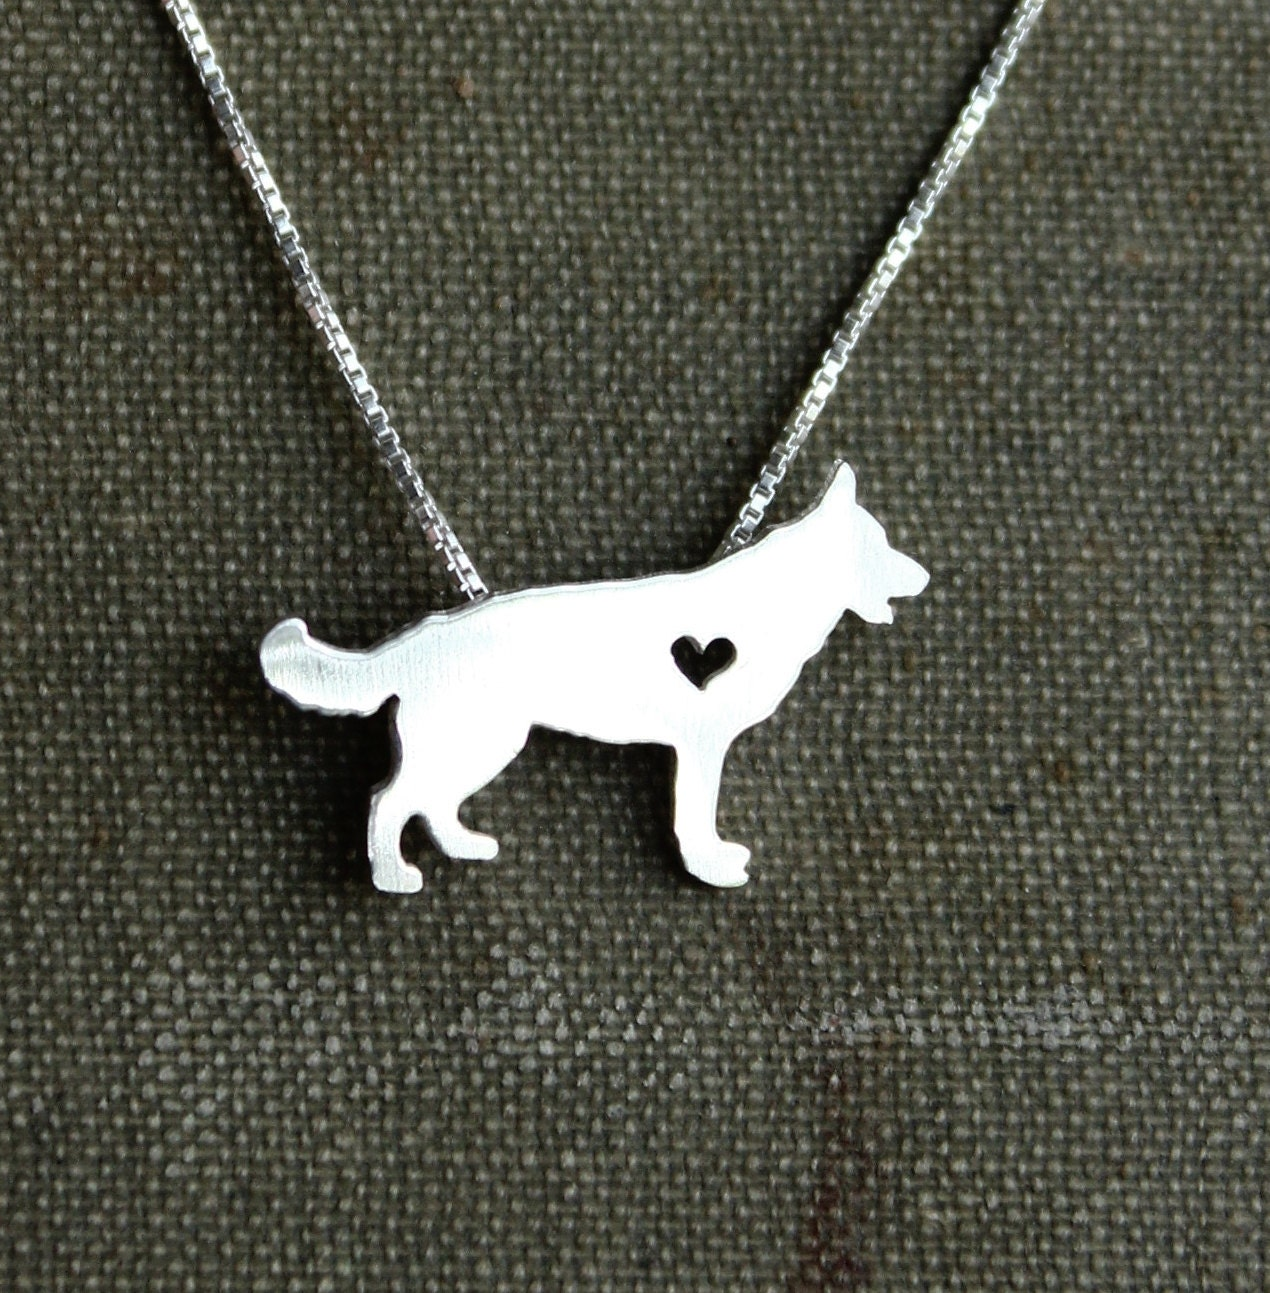 German Shepherd necklace tiny sterling silver by JustPlainSimple